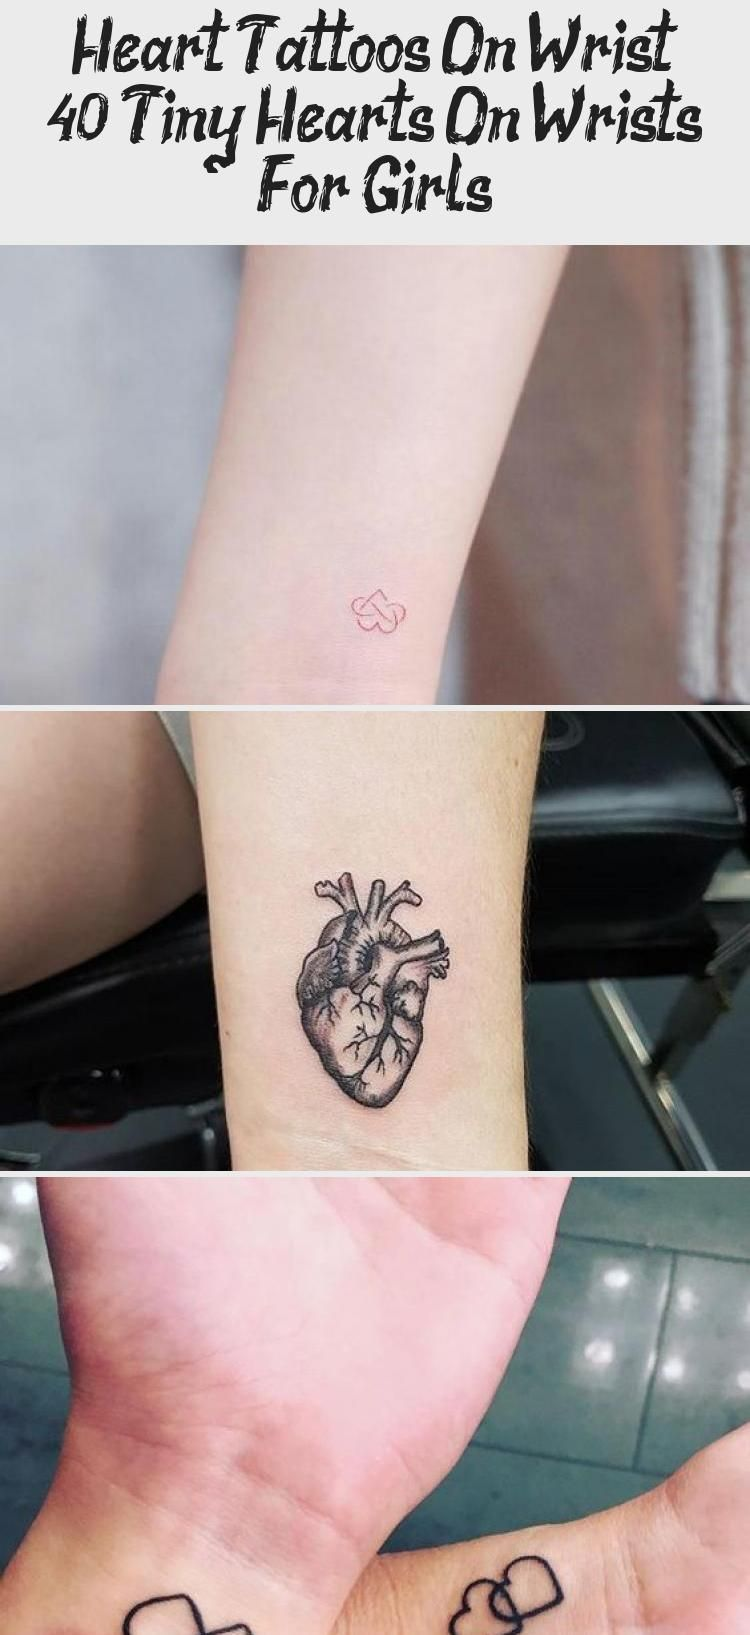 Dotted Small Heart Tattoo On a Wrist hearttattooDesing